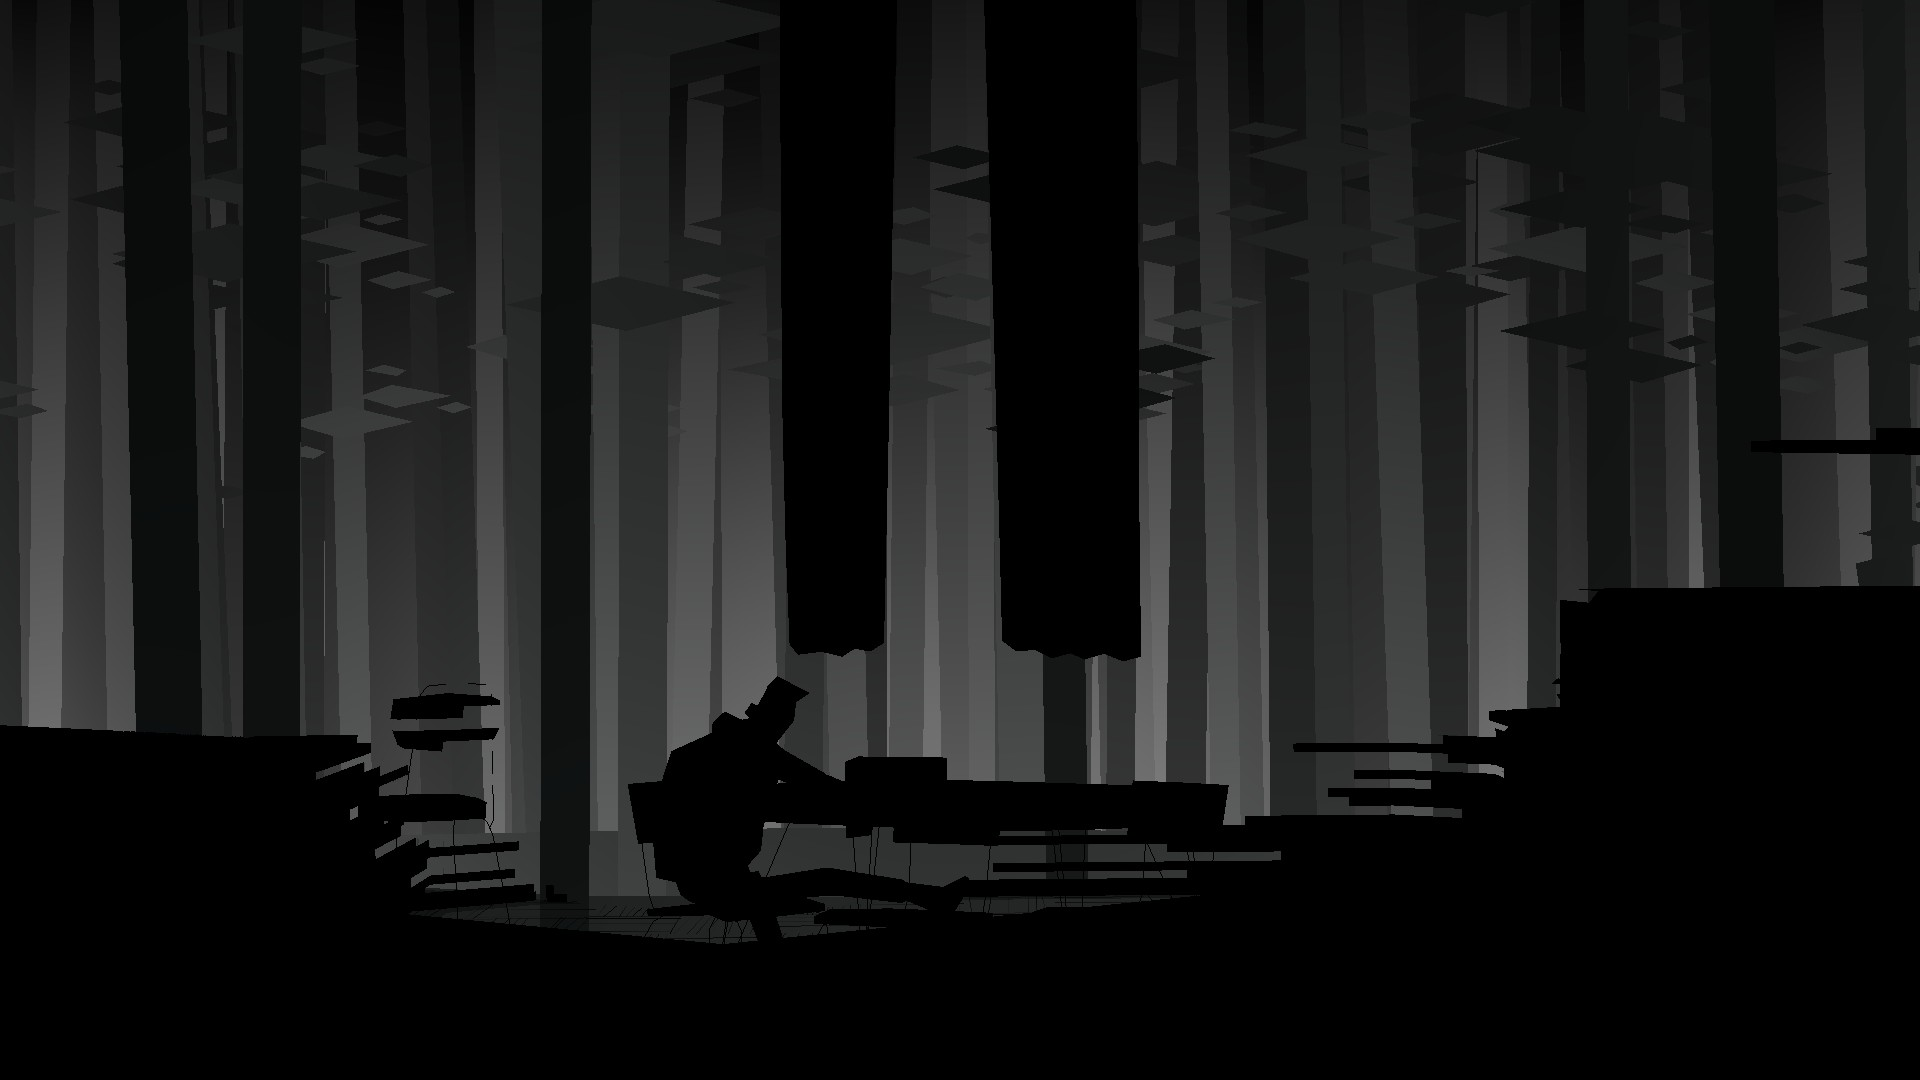 Conway from Kentucky Route Zero sits alone in a black and white empty room that resembles a forest.